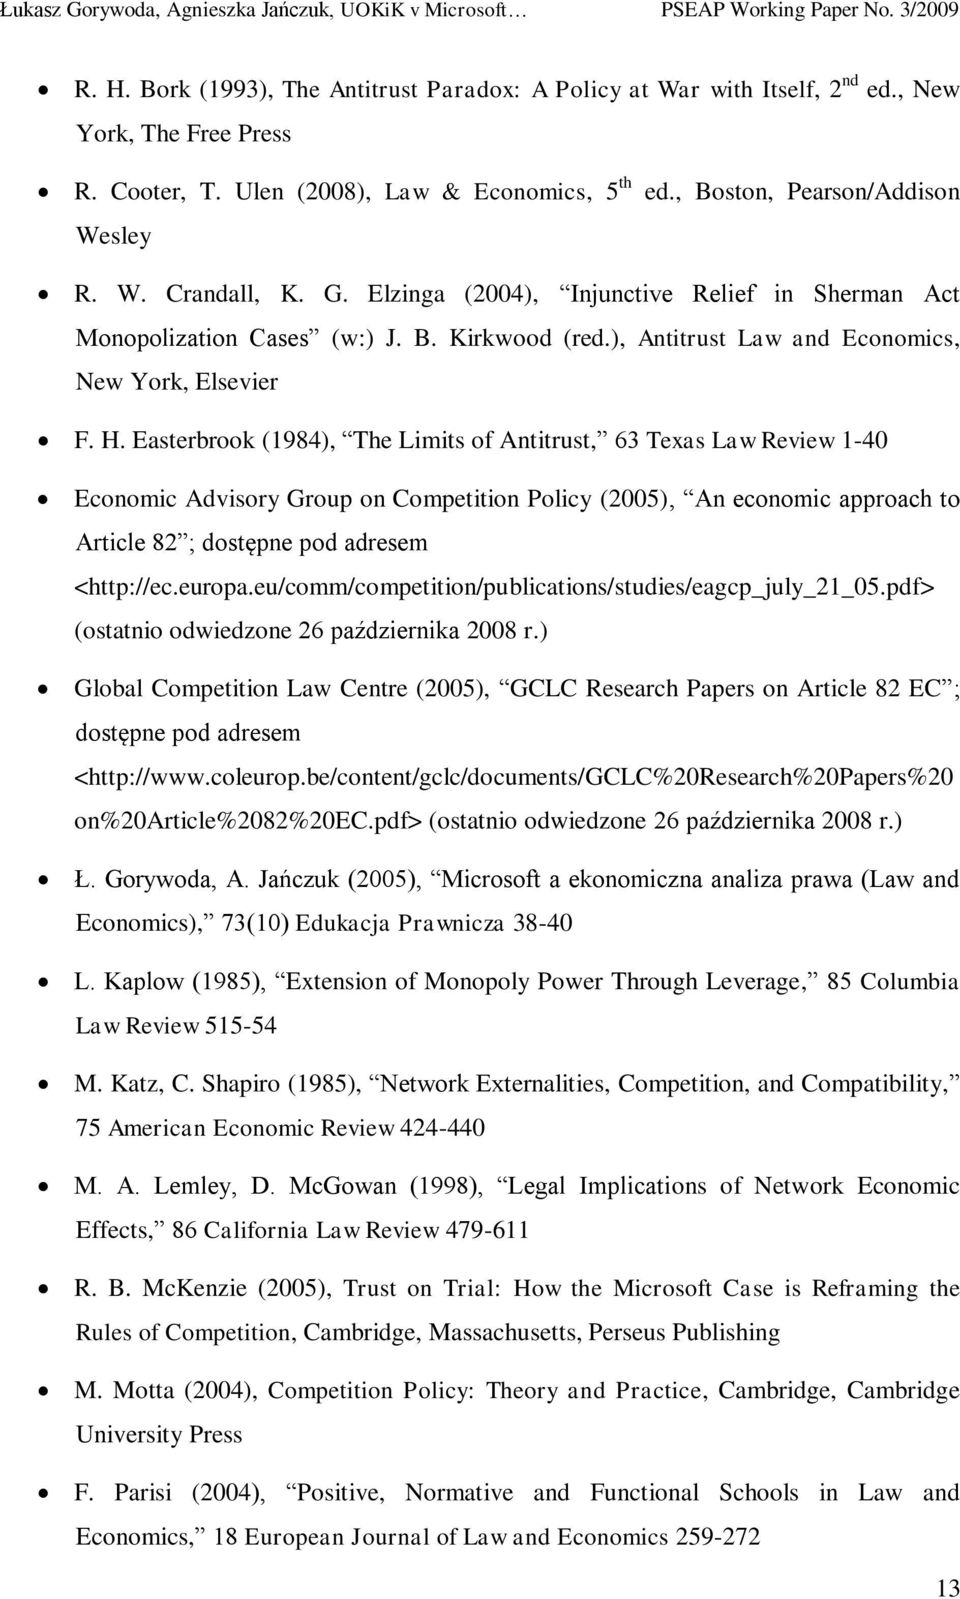 an essay on the normative foundations of antitrust economics Ence of economics on antitrust law, 30 econinquiry 294 (1992)  8 for a collection of essays discussing behavioral economics, see generally the law and  positive and normative implications of both be and public choice theory for institutional design, with.